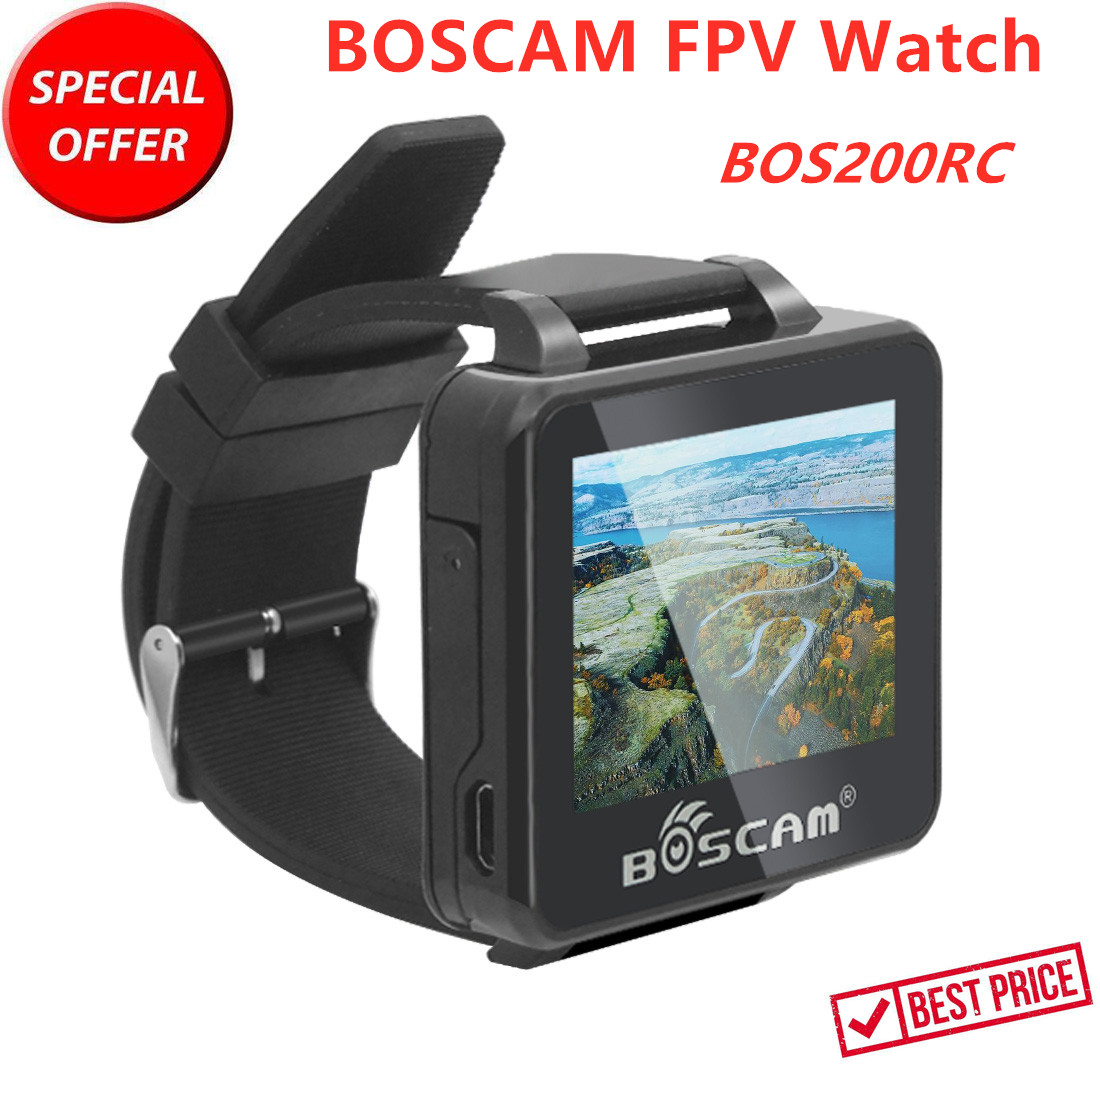 Update BOSCAM BOS200RC FPV Watch 200RC 5.8GHz 48CH HD 960*240 2 Inch TFT Monitor Wireless AV Receiver For FPV RC Quadcopter